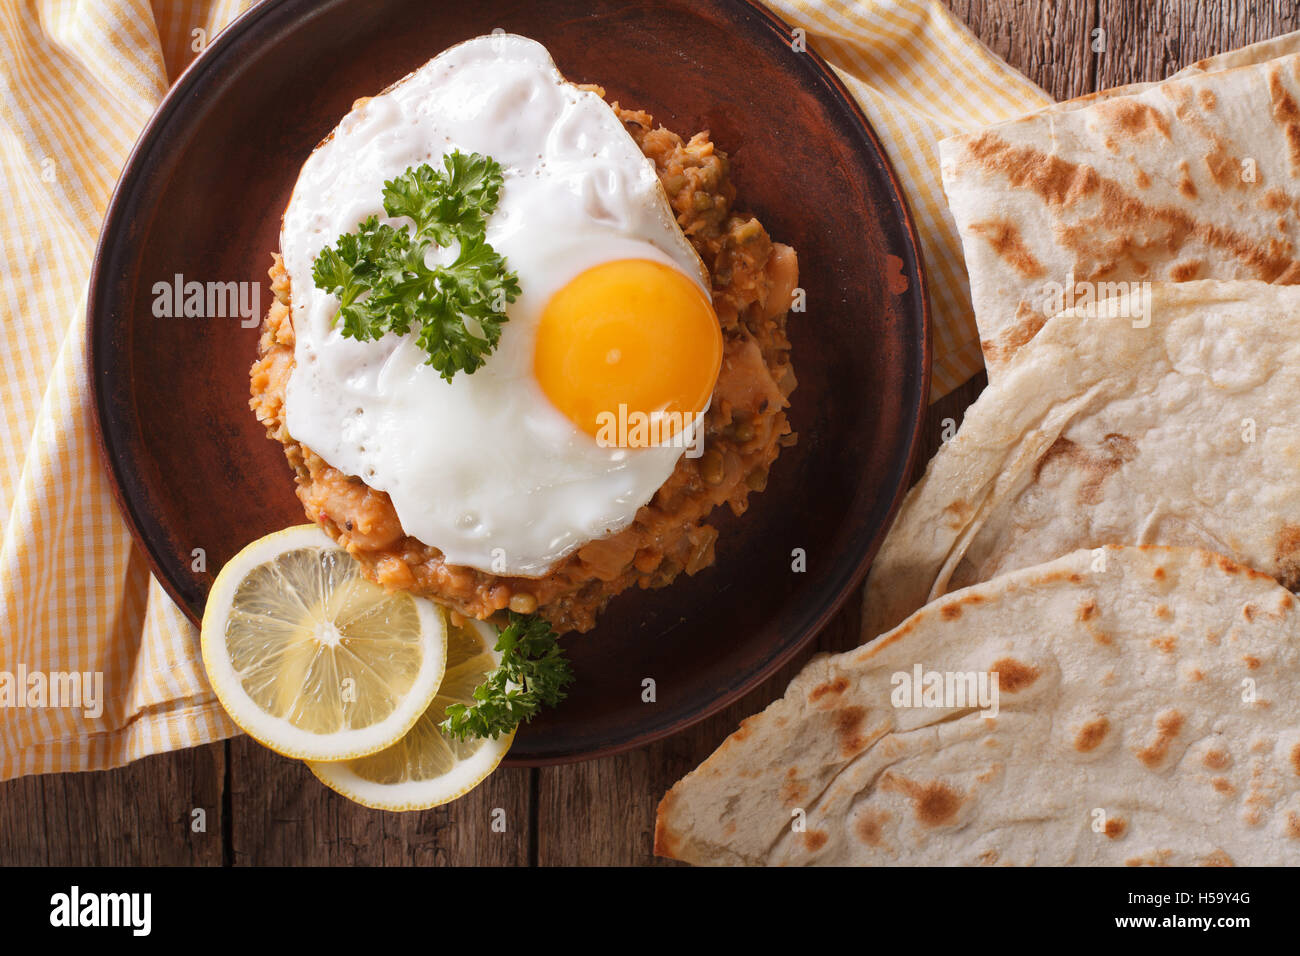 ful medames with a fried egg and bread close-up on the table. Horizontal view from above - Stock Image